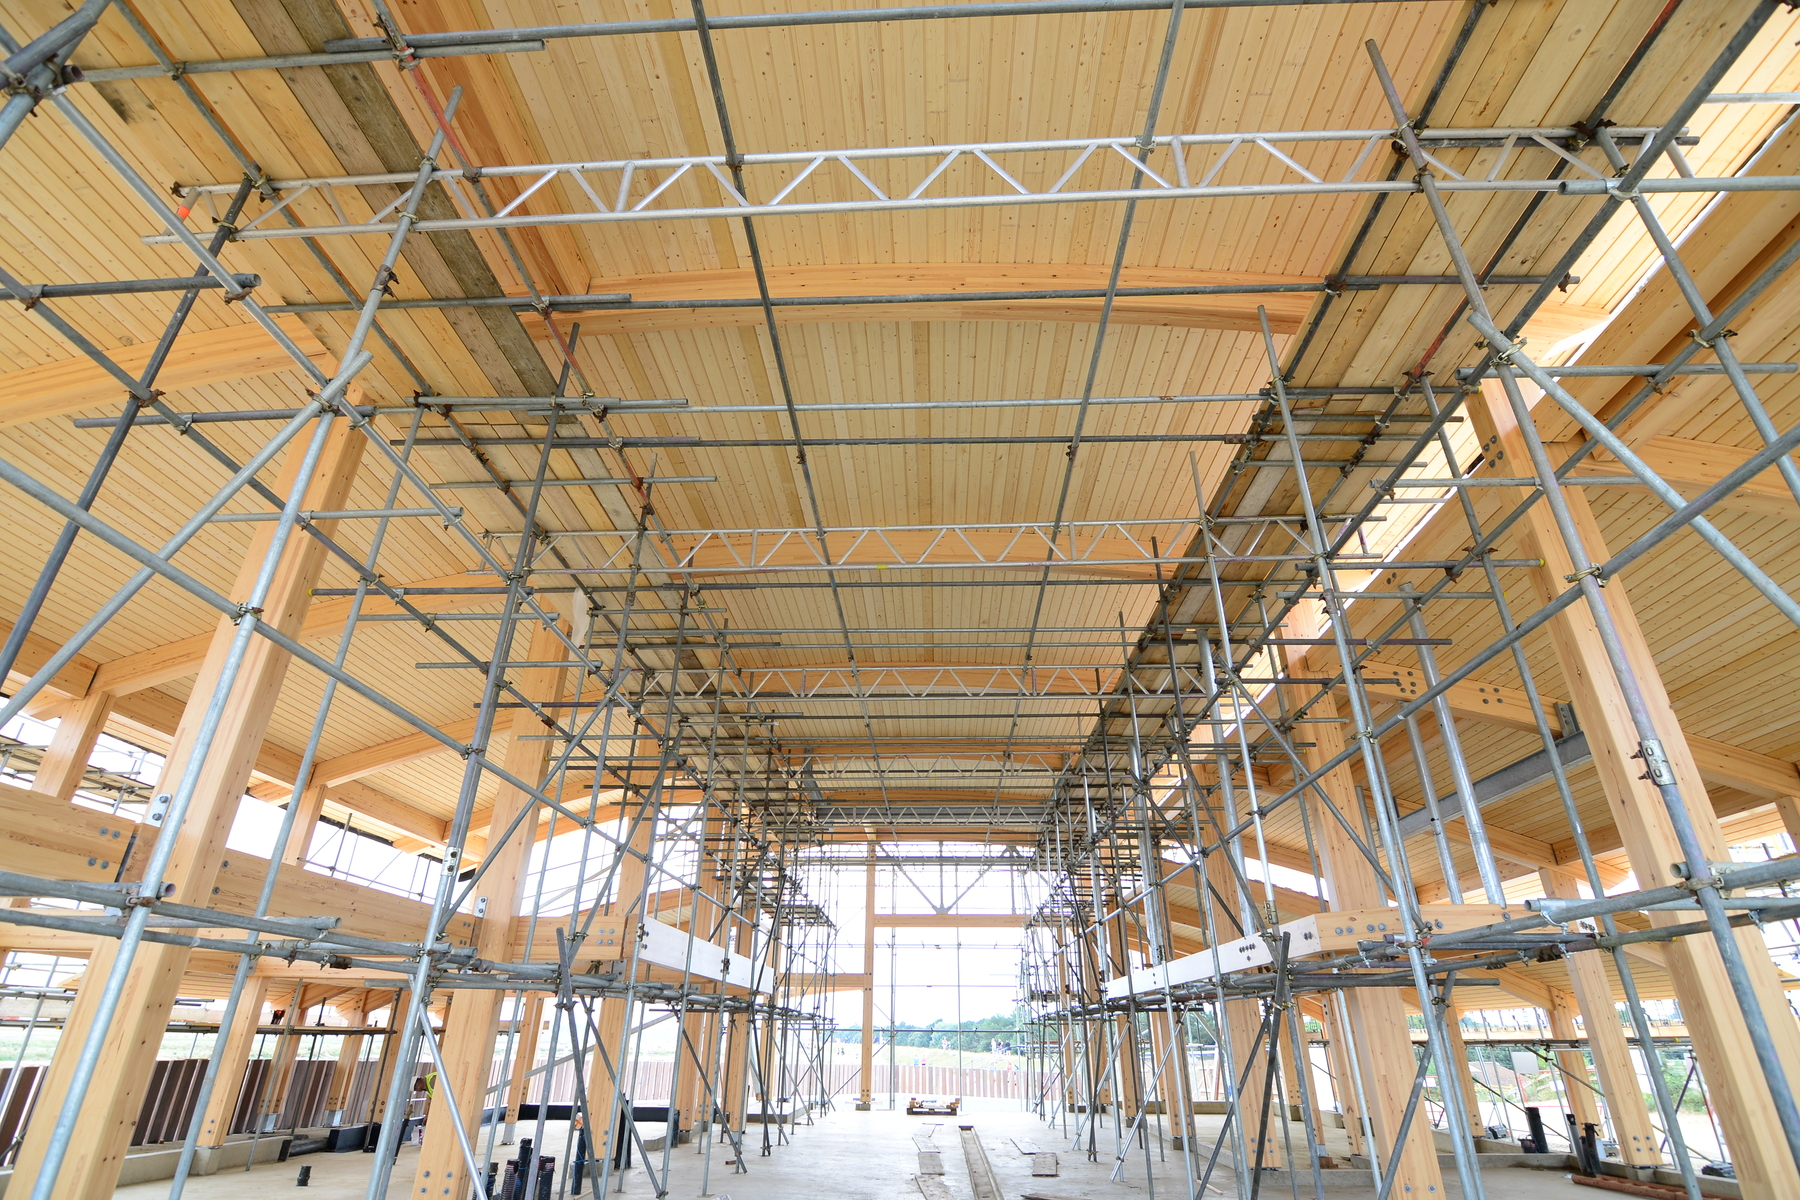 Boat hall with planked roof emerging from the scaffolding